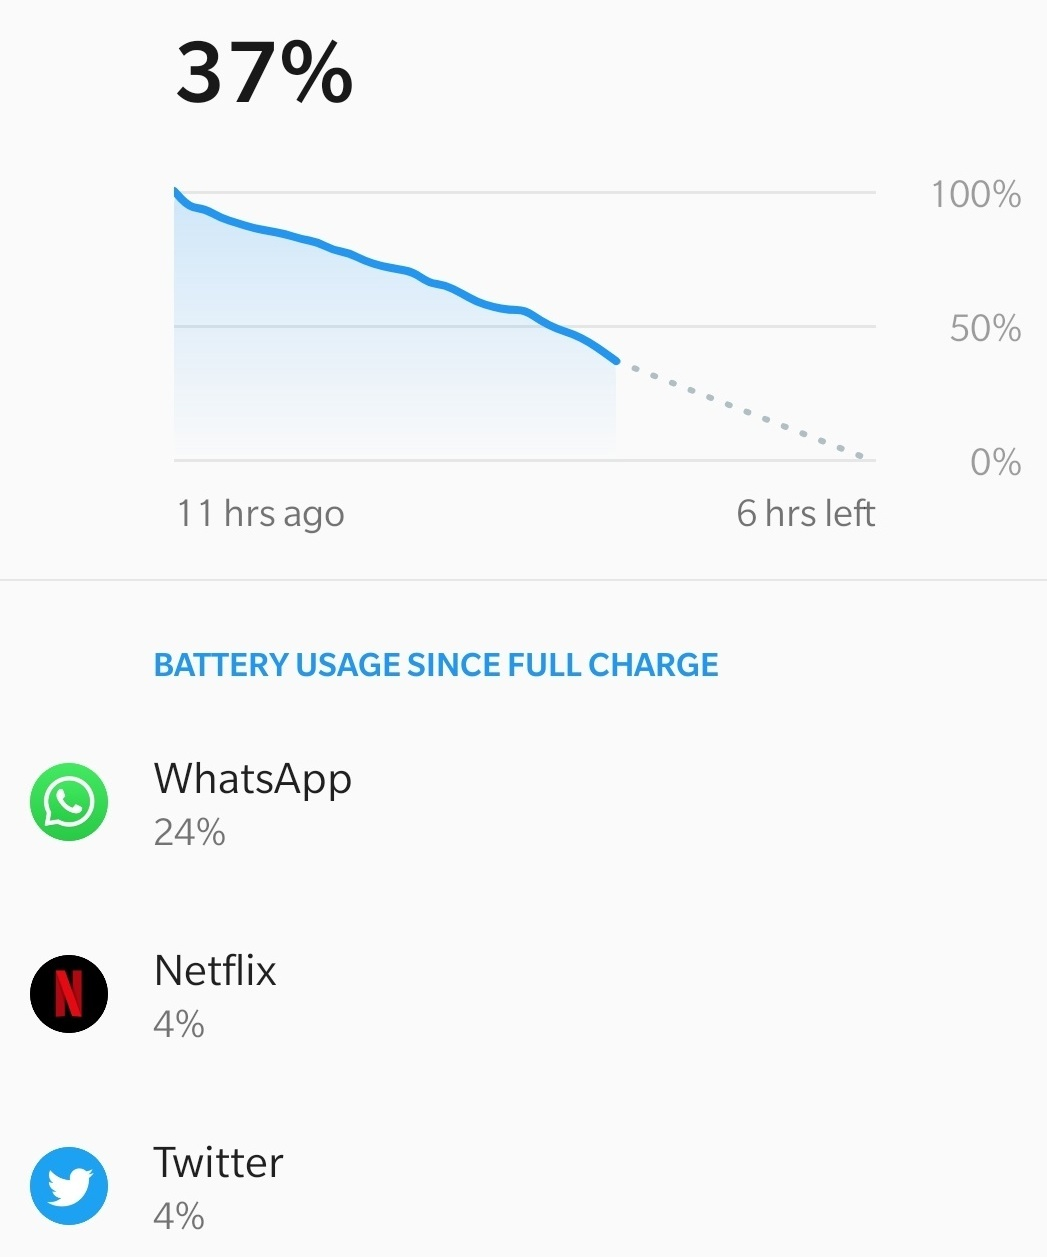 Screenshot of a phone's battery usage with WhatsApp on 24pc and Netflix and Twitter on both 4pc.